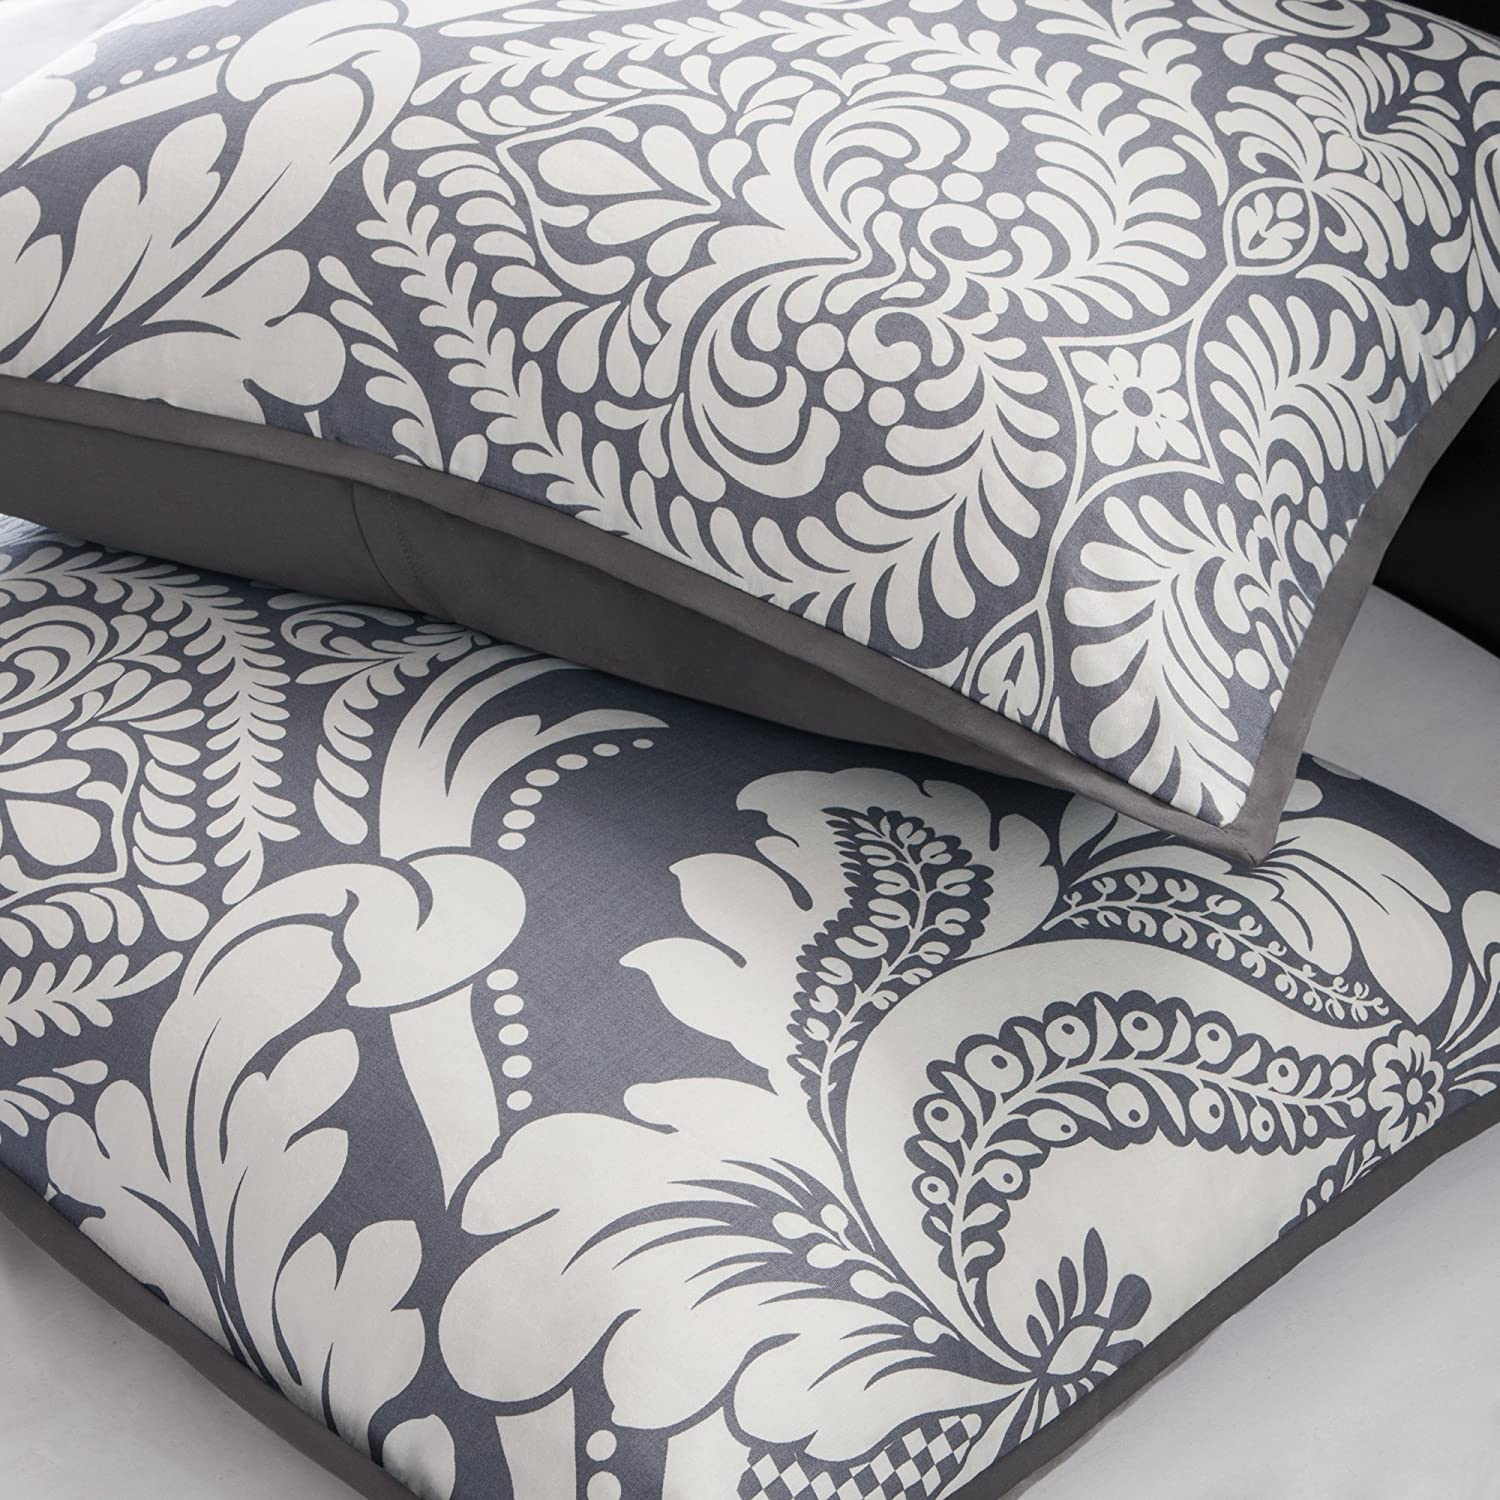 Indigo Blue Cotton Bedroom Comforters 7 Pieces Bedding Sets Damask Madison Park Vienna Queen Size Bed Comforter Set Bed in A Bag